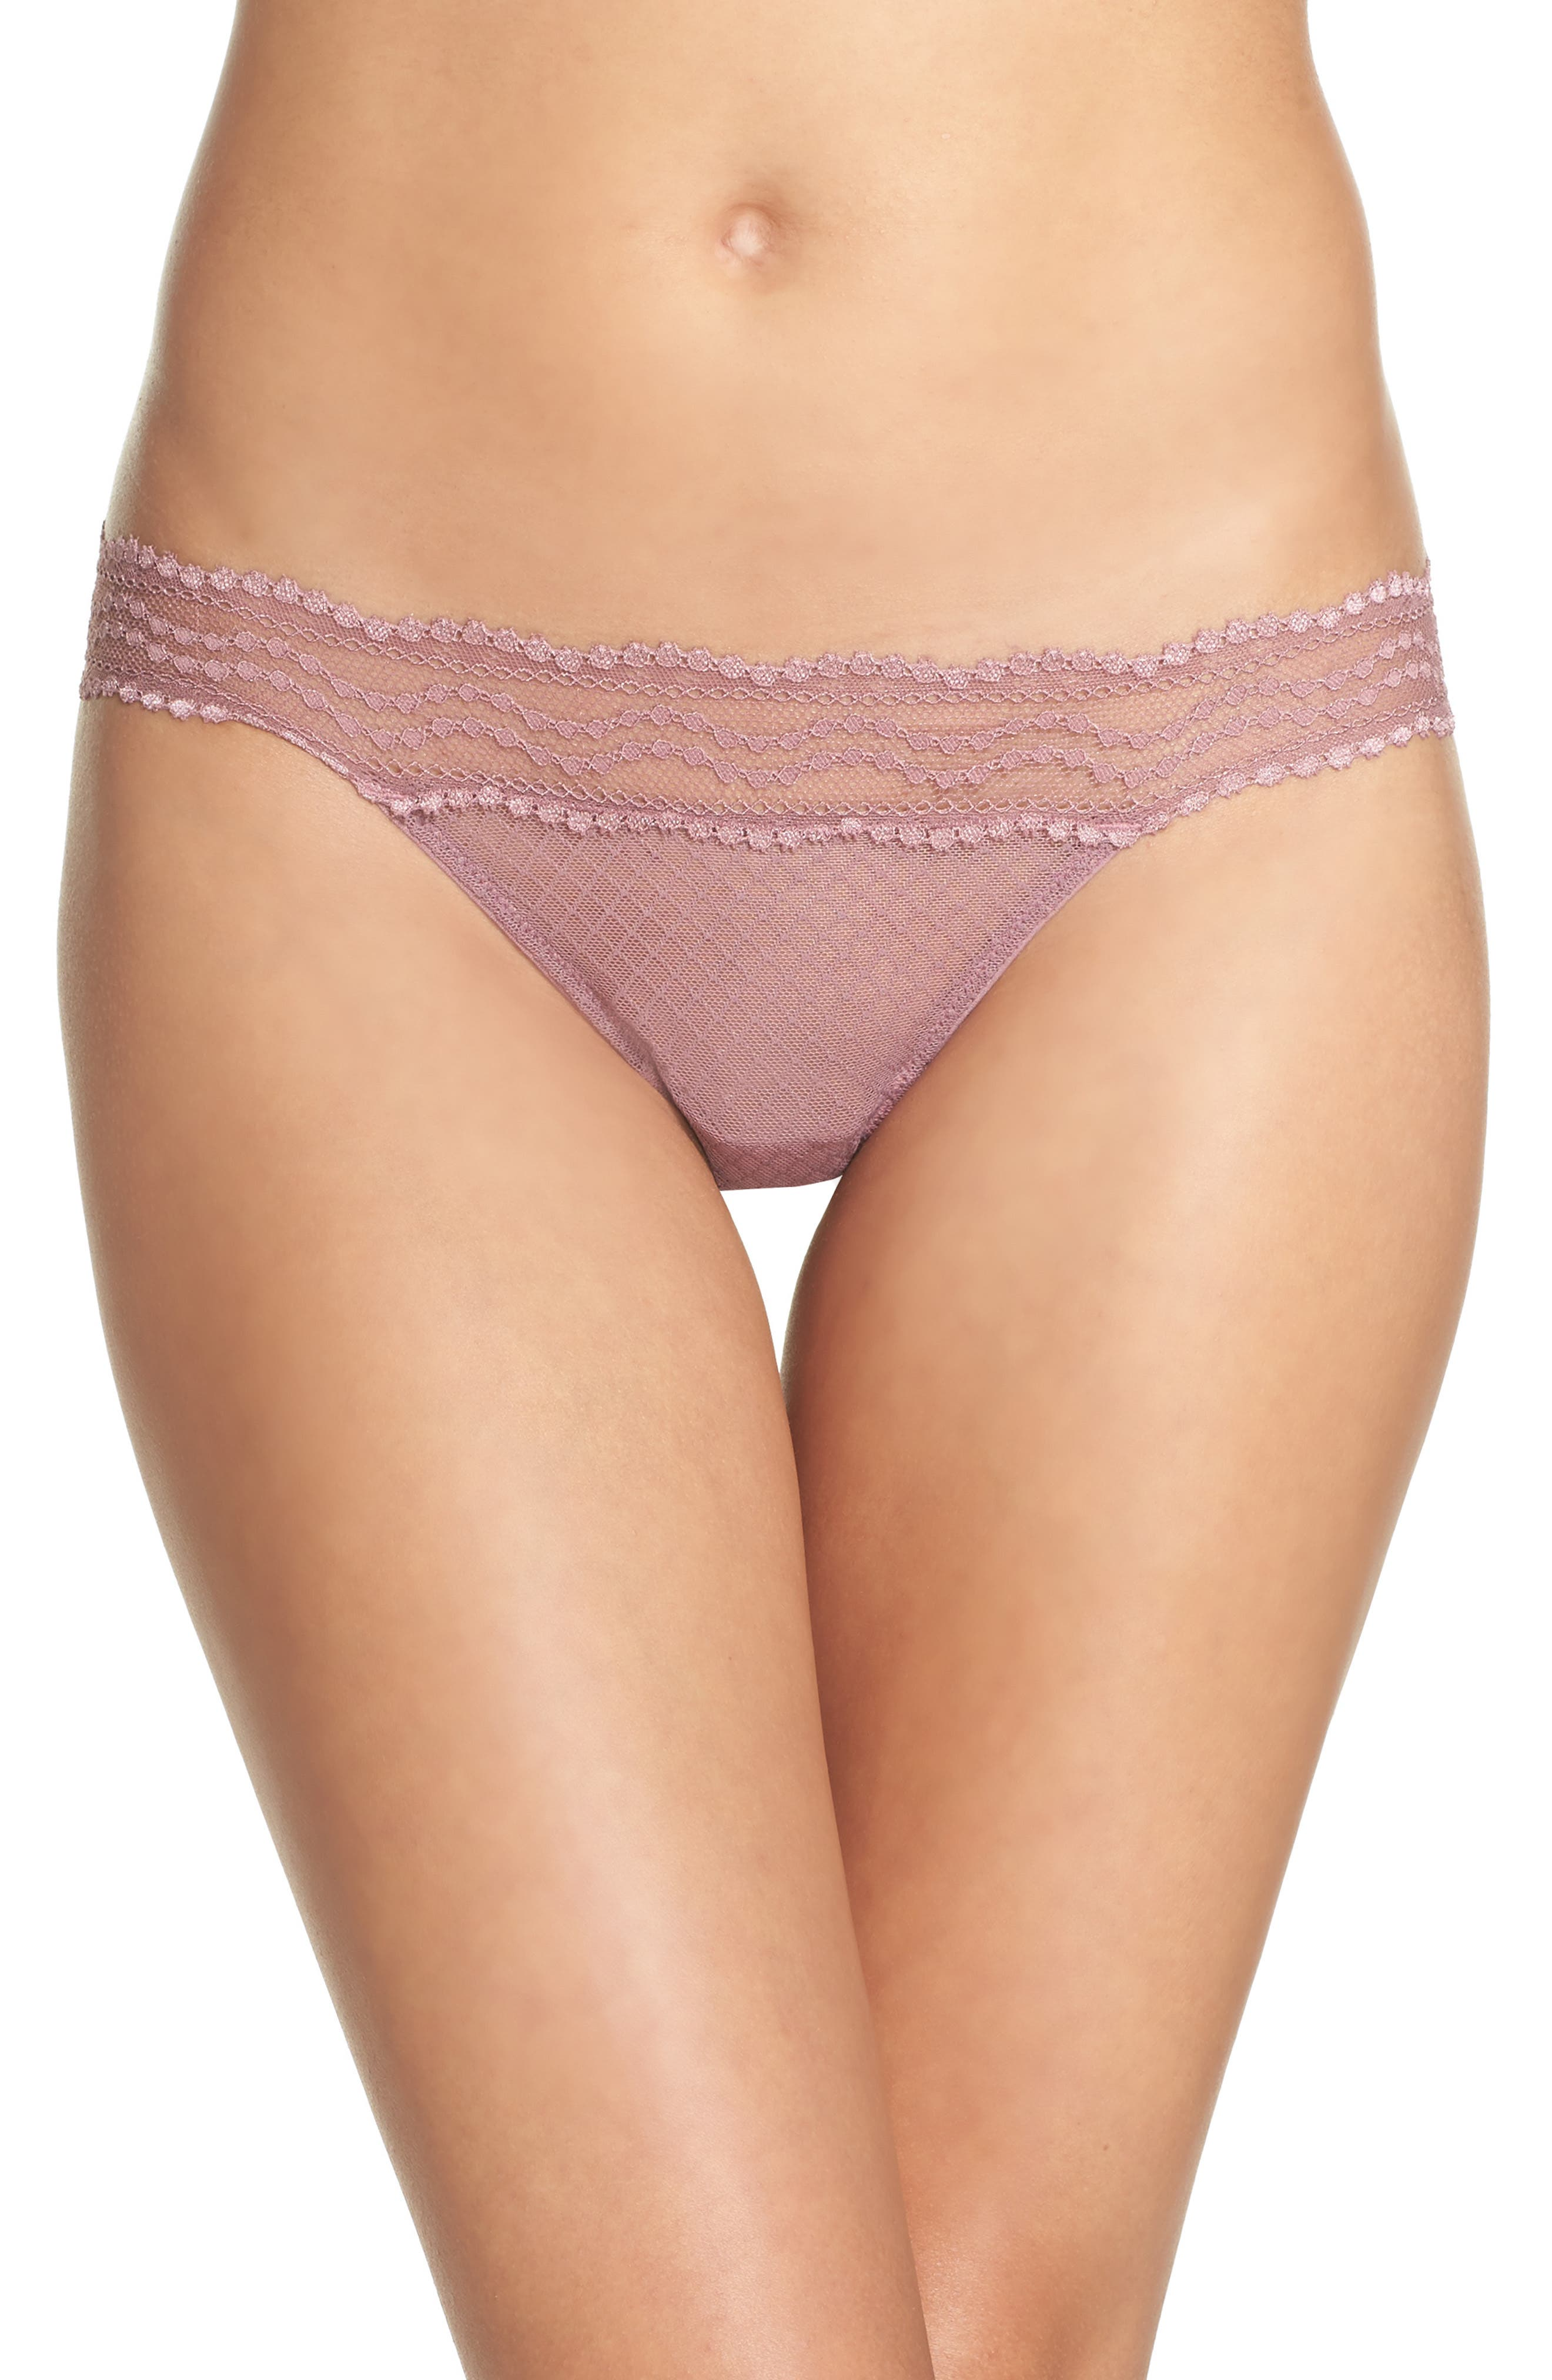 Main Image - Vince Camuto Colette Thong (3 for $33)